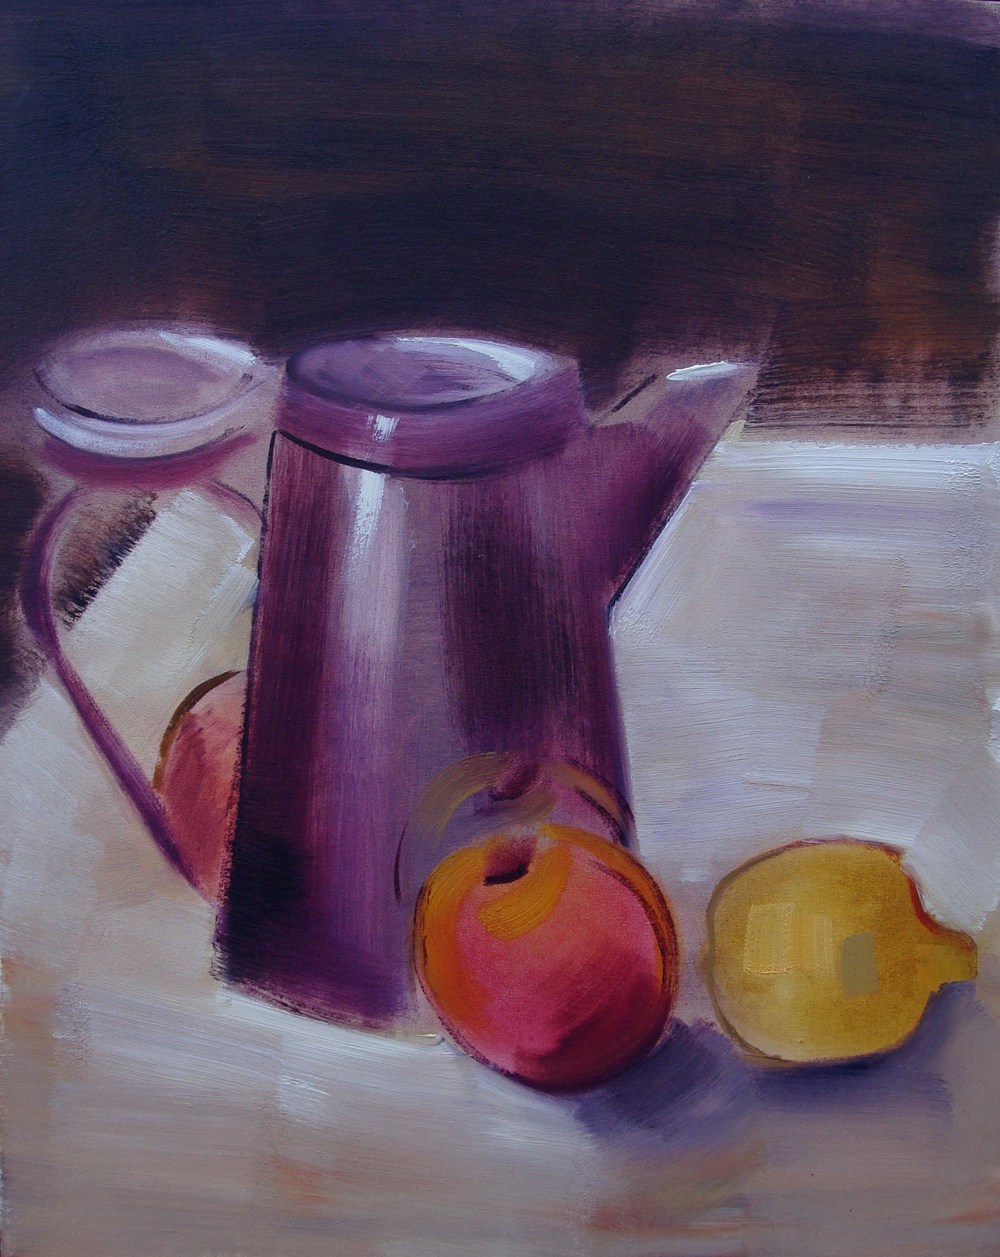 Still life with pitcher. Oil on Canvas. 19x24in. 1992